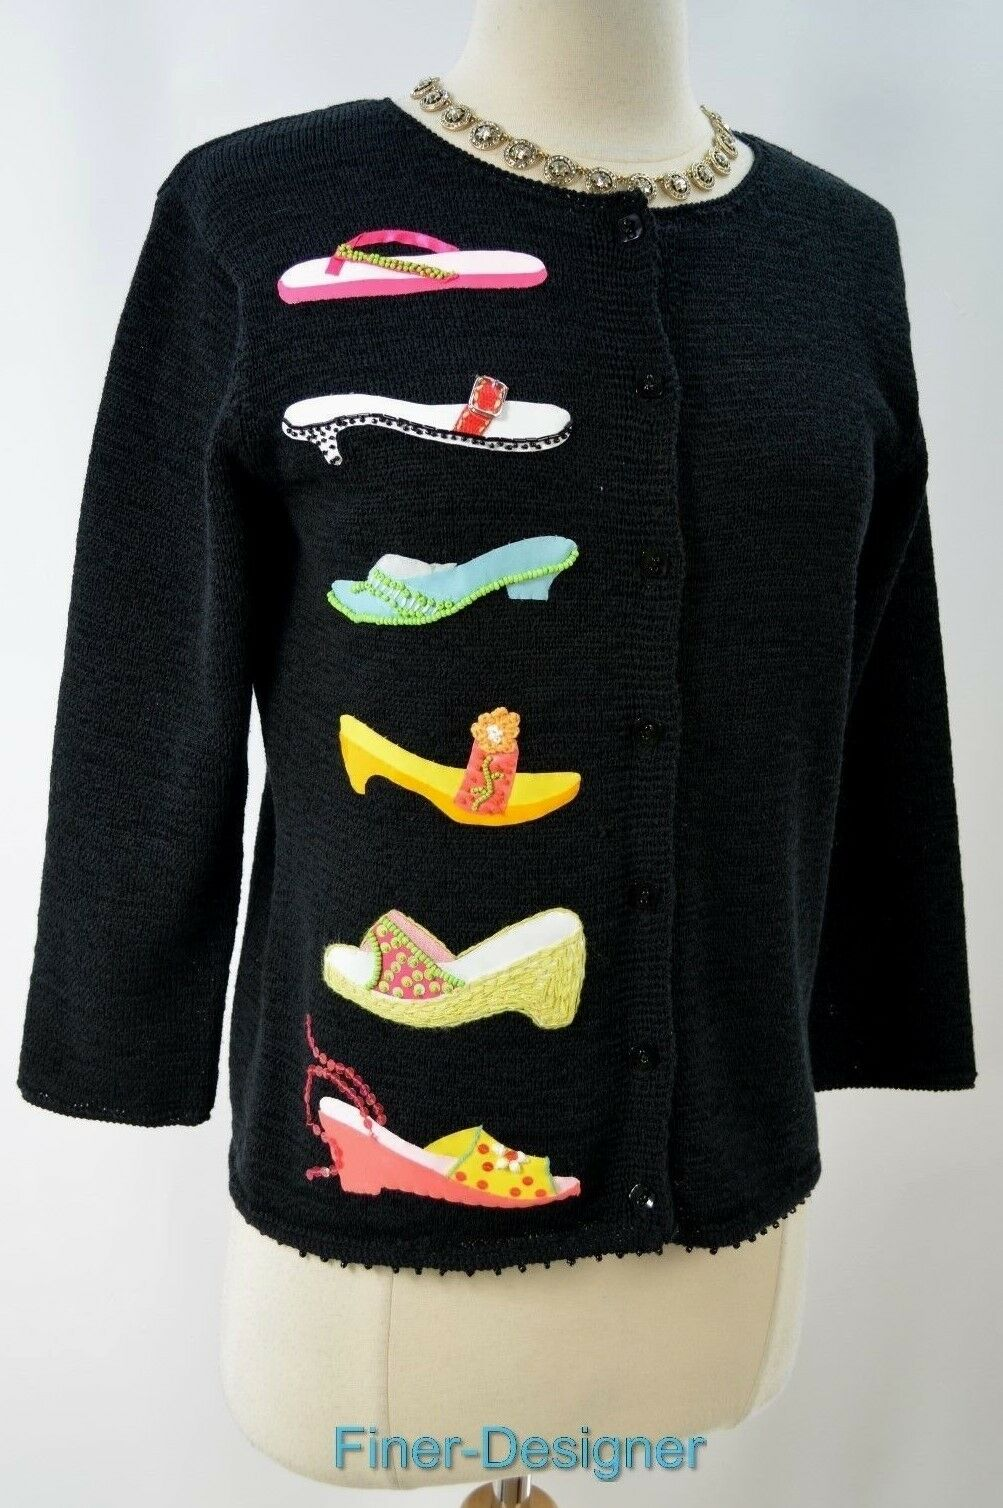 Susan Bristol knit Sweater top cardigan novelty embellished sandals shoes S NEW